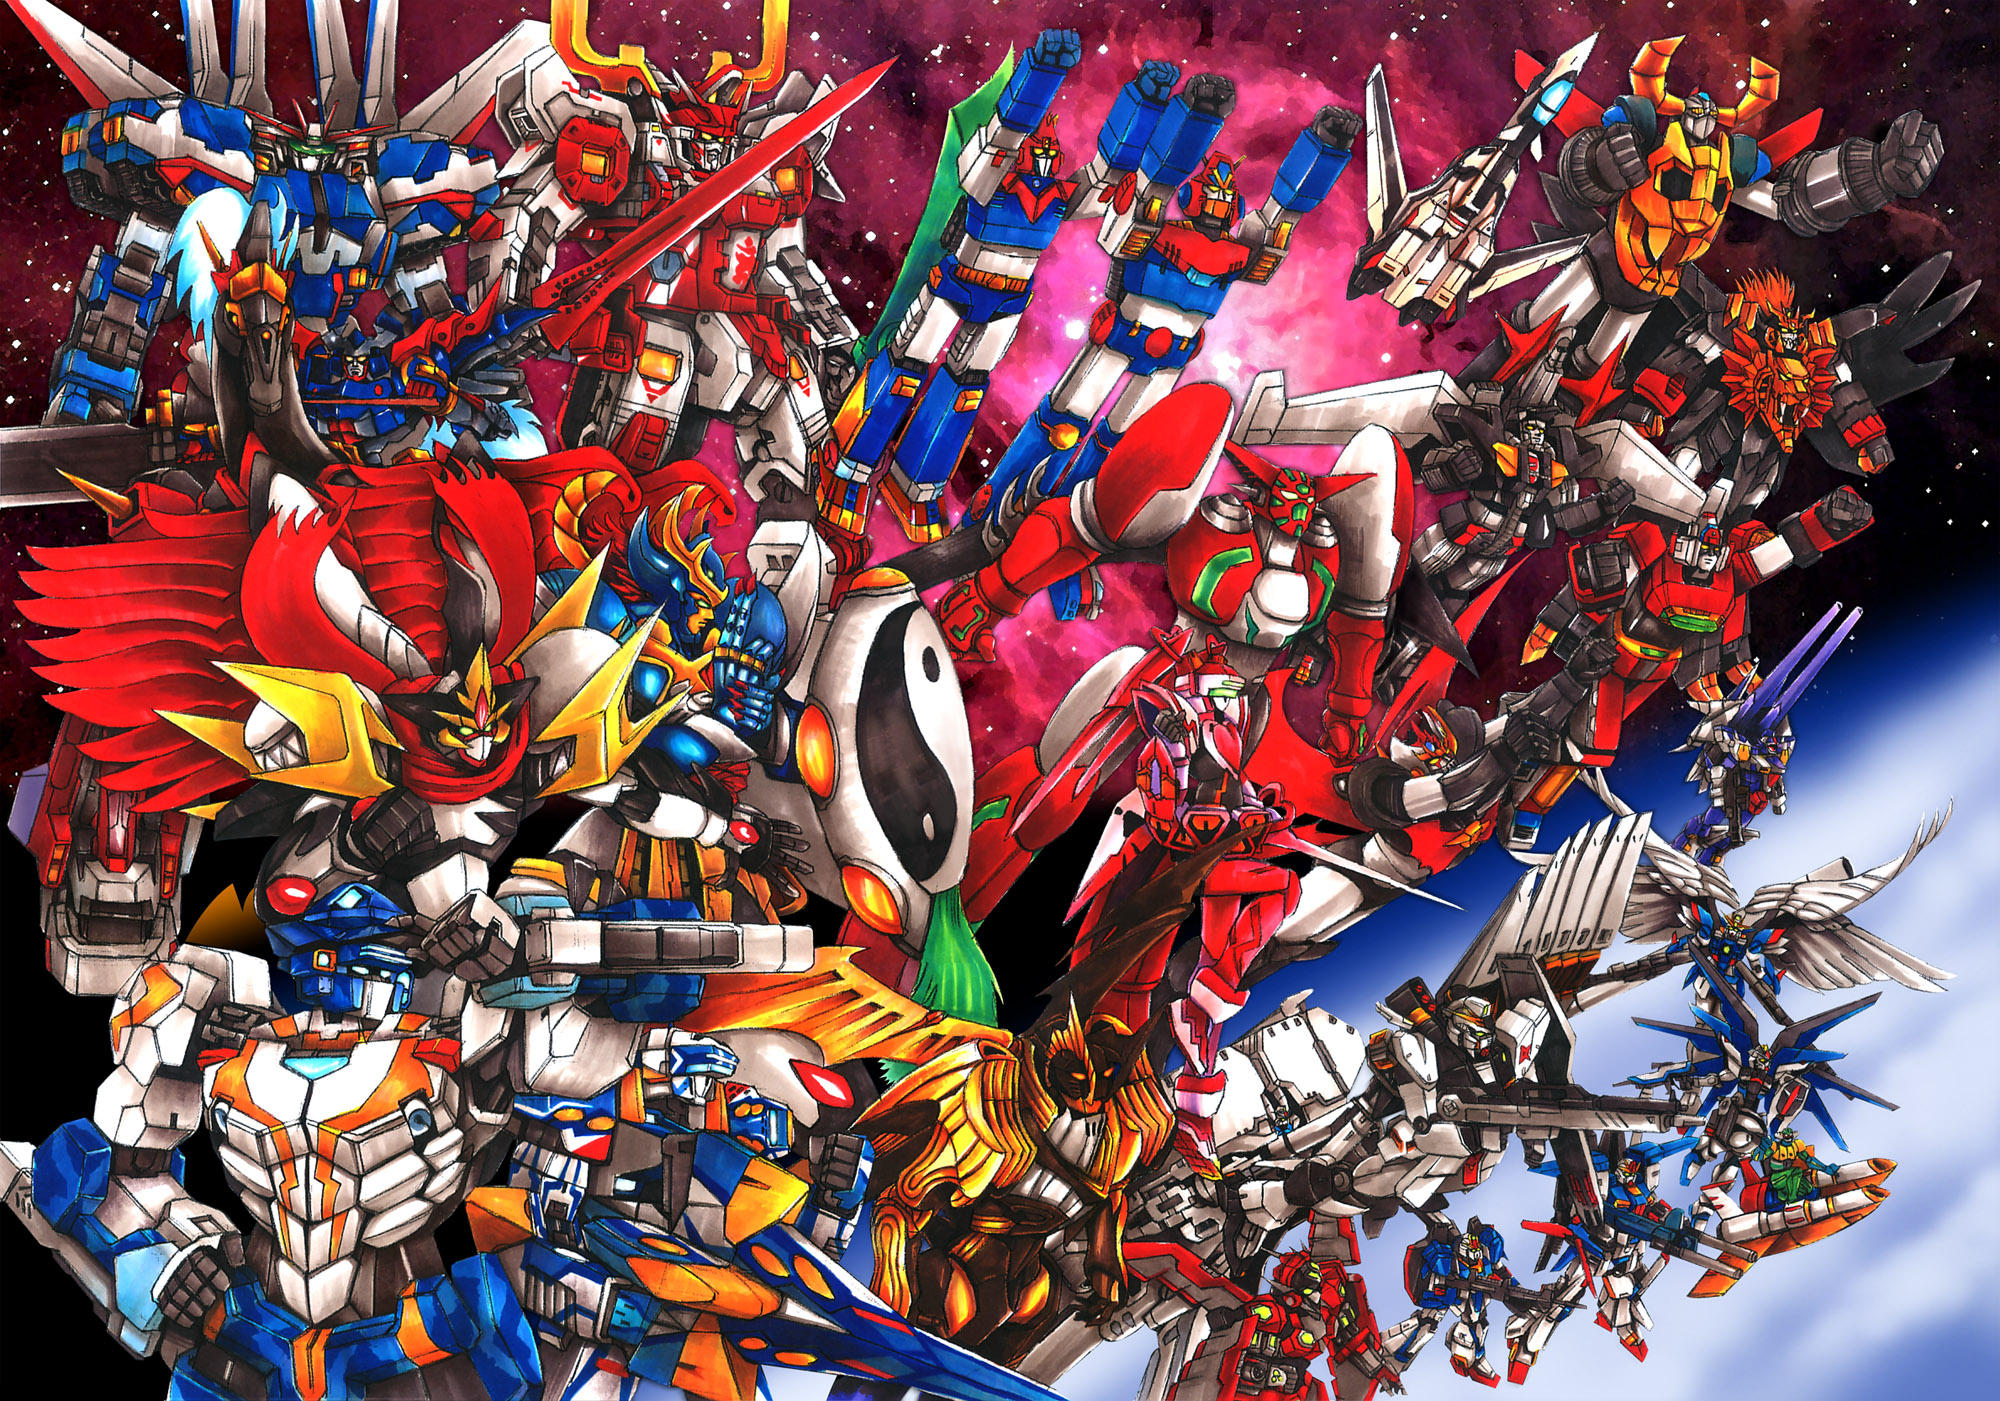 Arrivano in blu ray e dvd i super robot movie